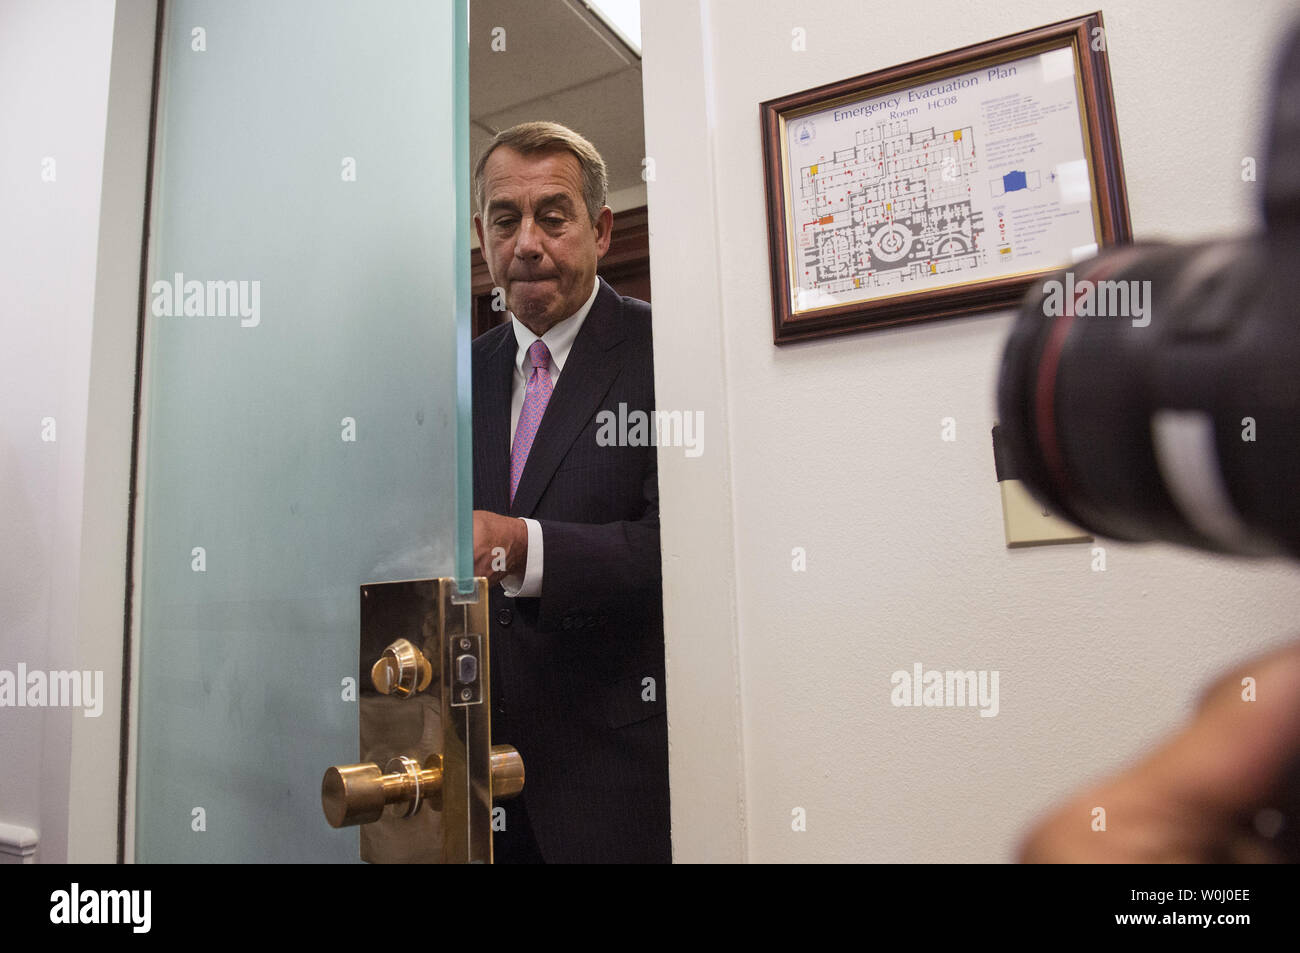 Speaker of the House John Boehner (R-OH) walks back into a press conference on Capitol Hill in Washington, D.C. on September 29, 2015. Photo by Kevin Dietsch/UPI - Stock Image